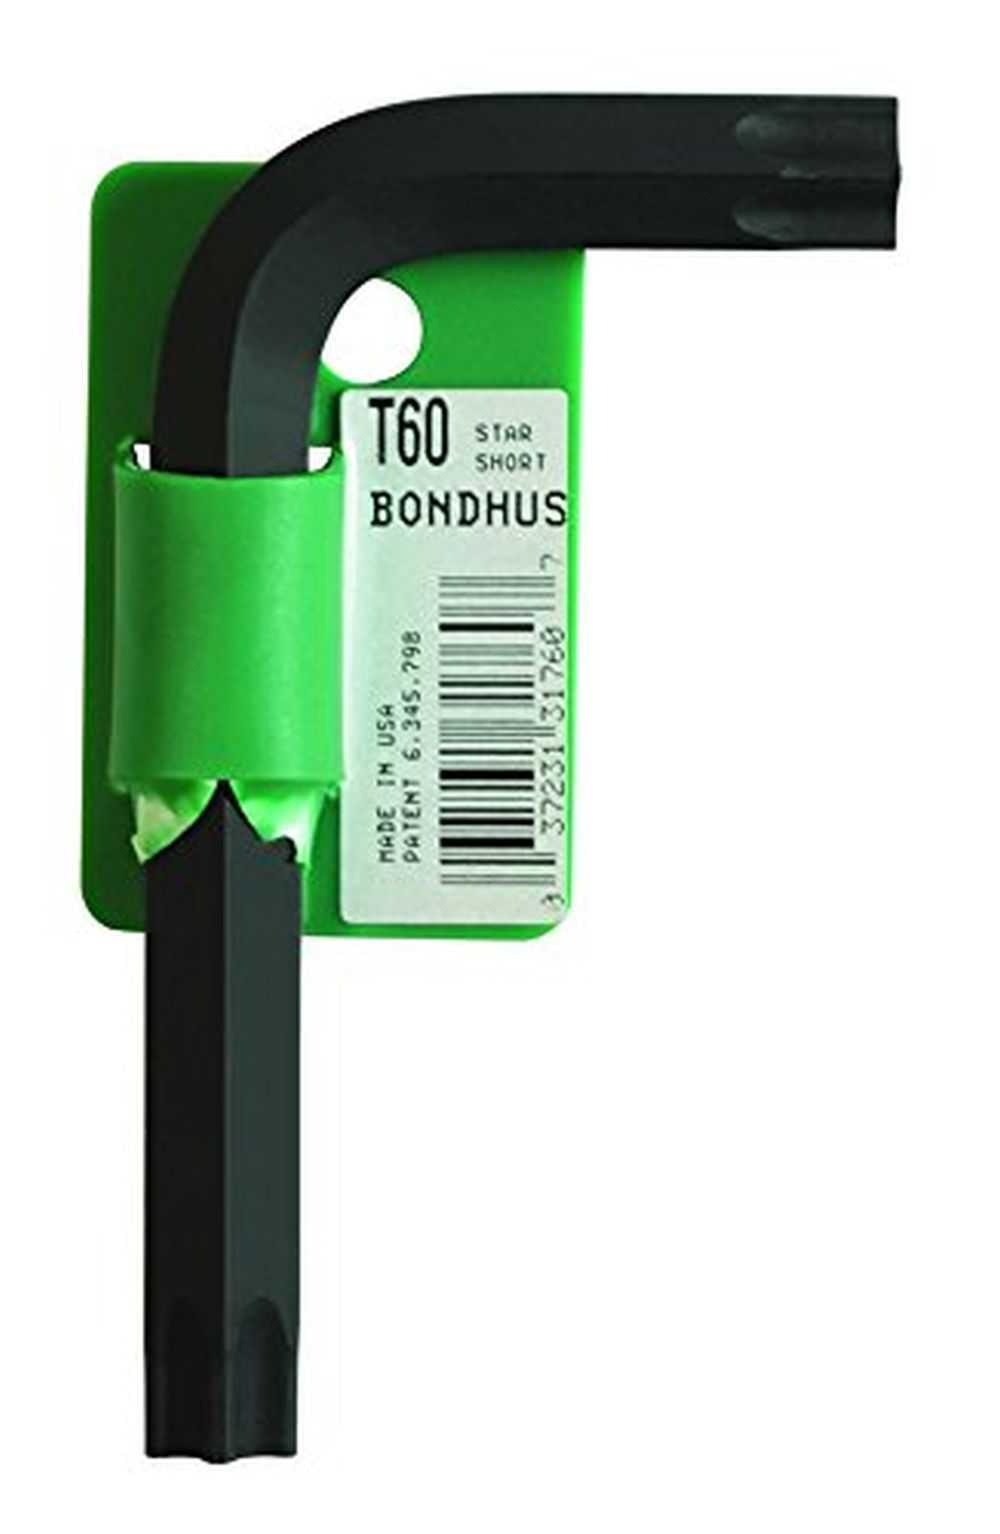 Bondhus 31760 Tagged & Barcoded T60 Star Tip Hex Key L-Wrench, 3.7'